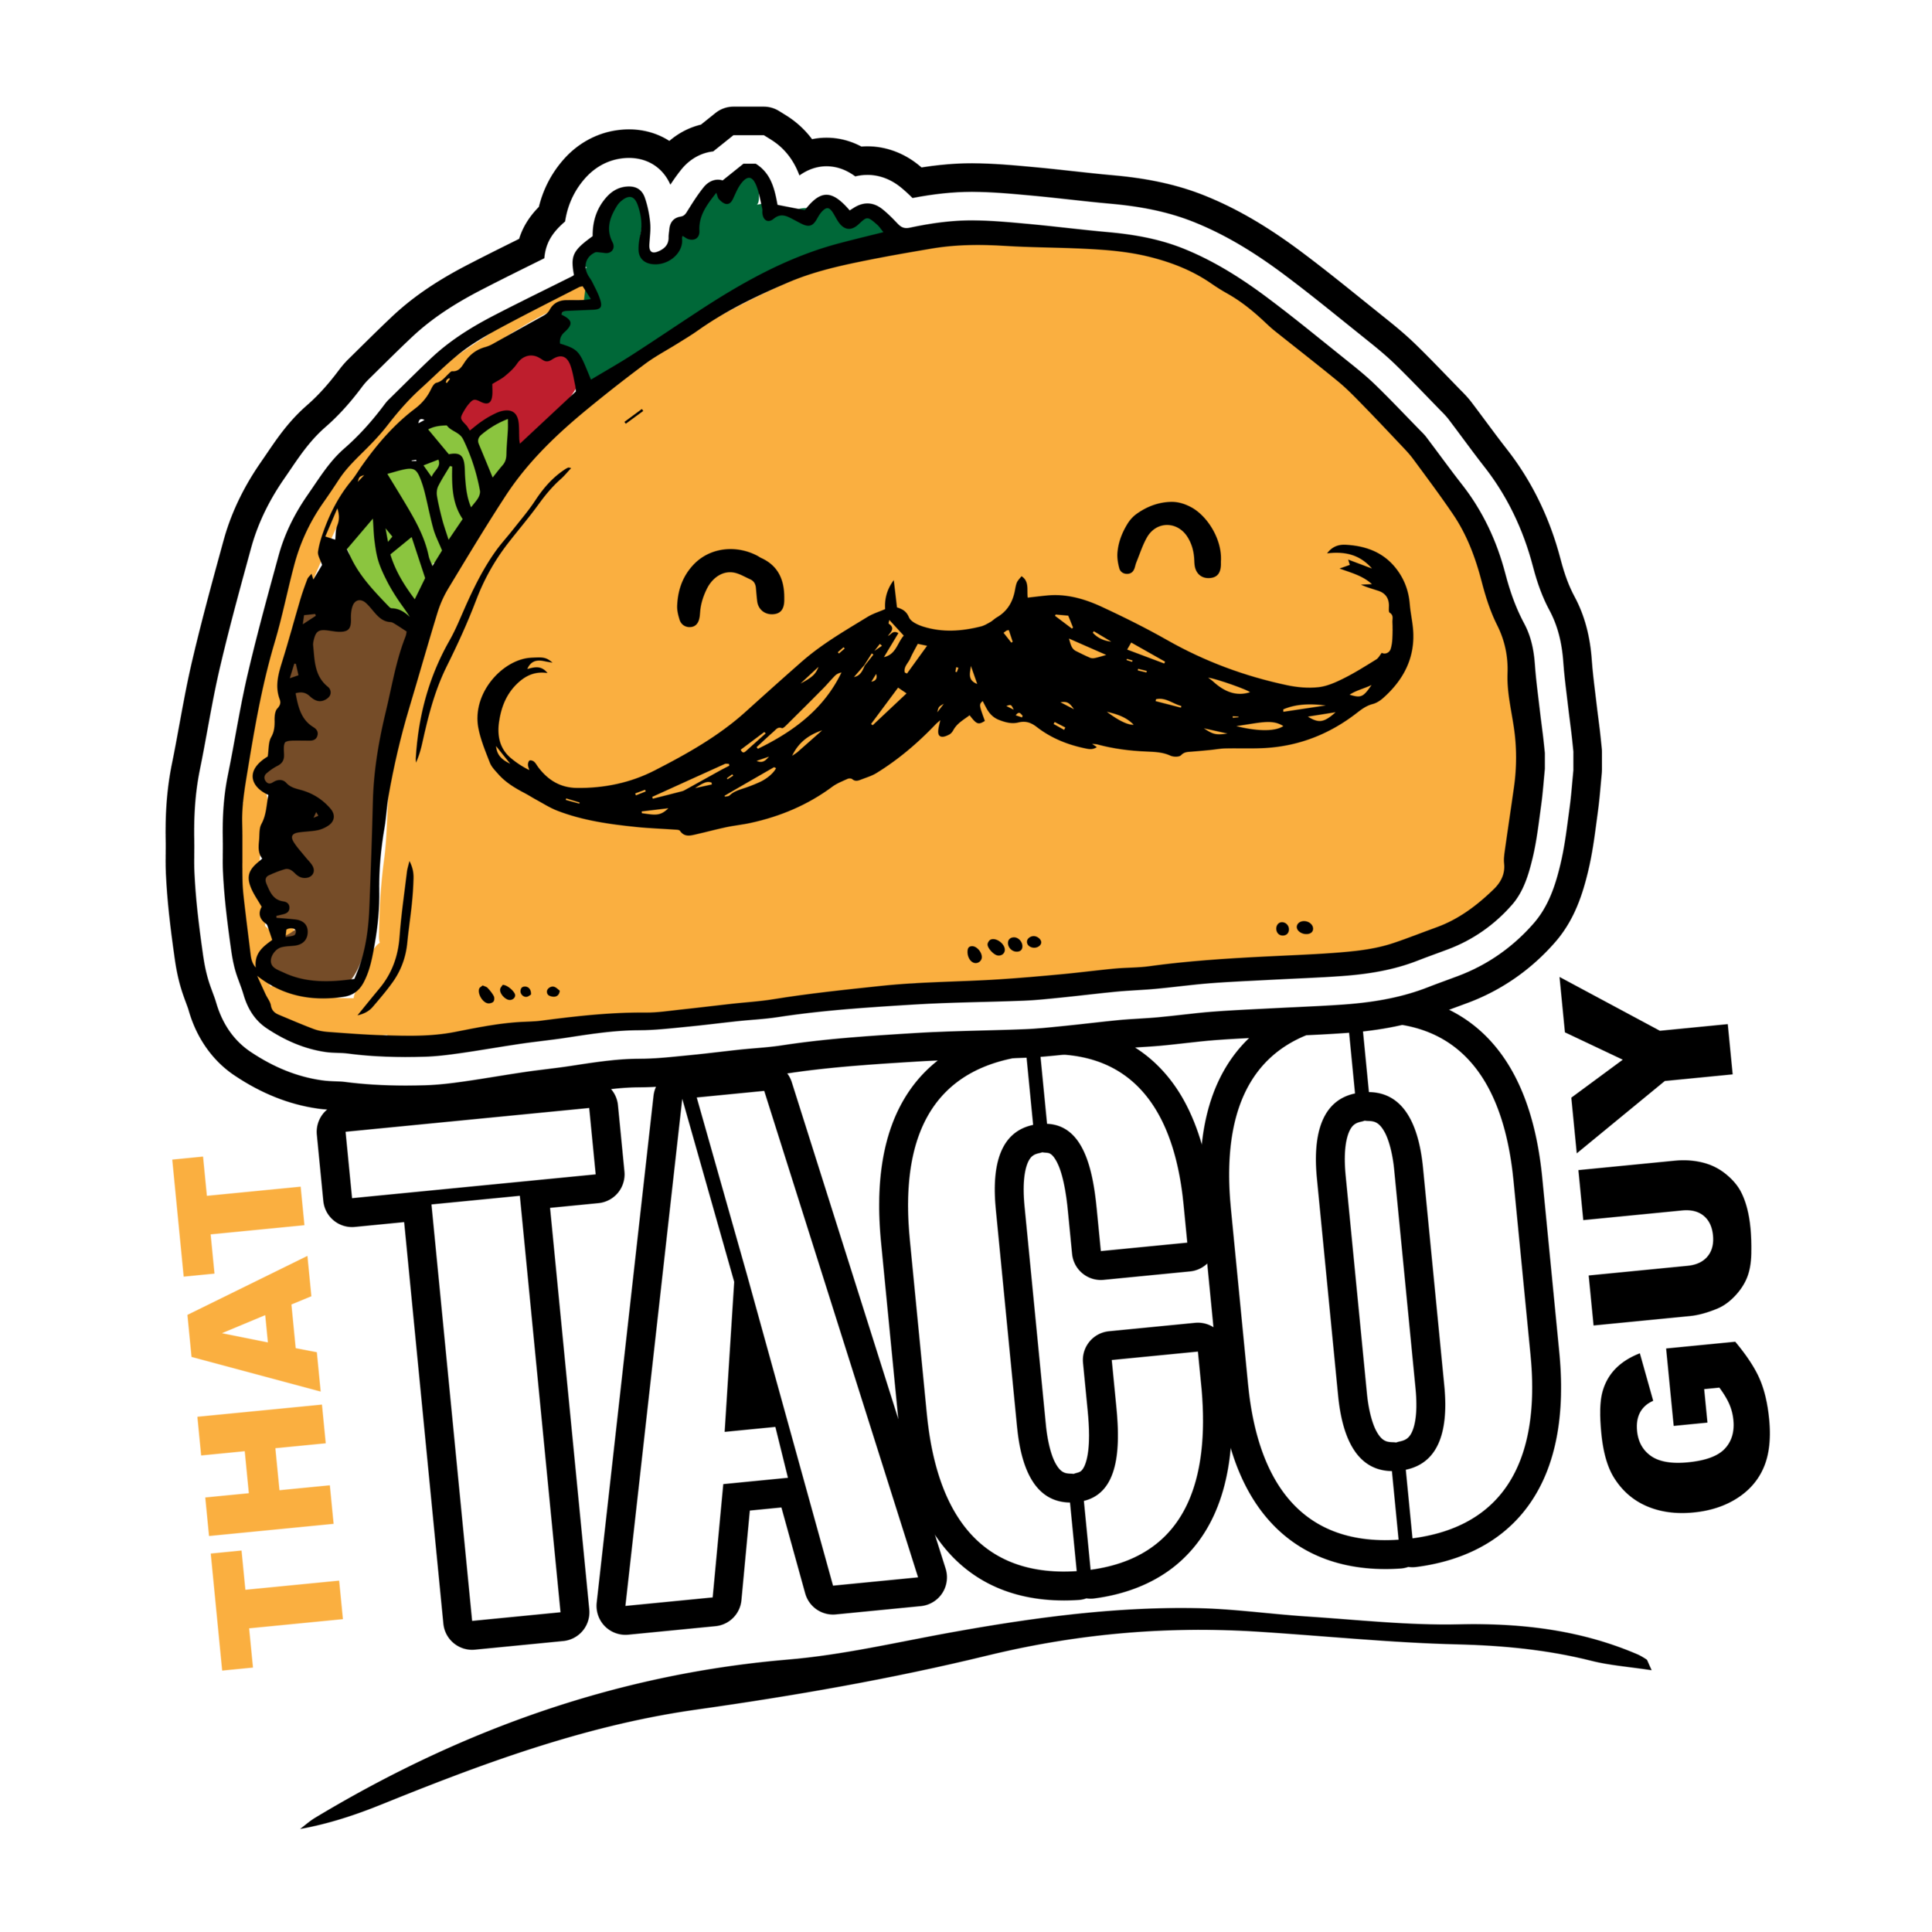 That-Taco-Guy_LOGO_NoBkg.png